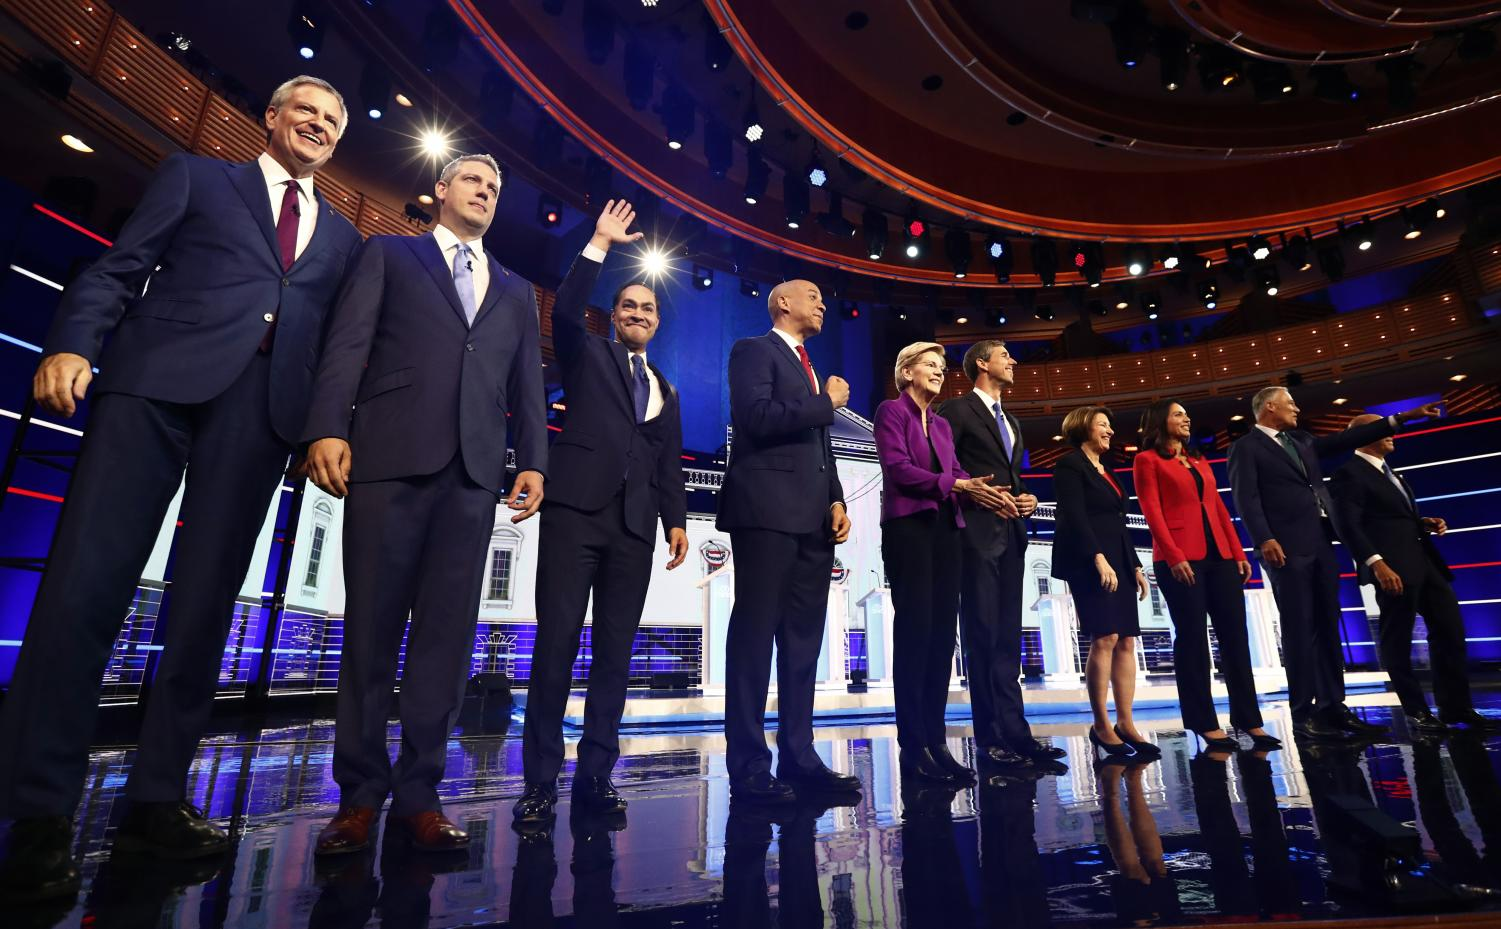 Health care, immigration top issues at Democrats' 1st debate - The